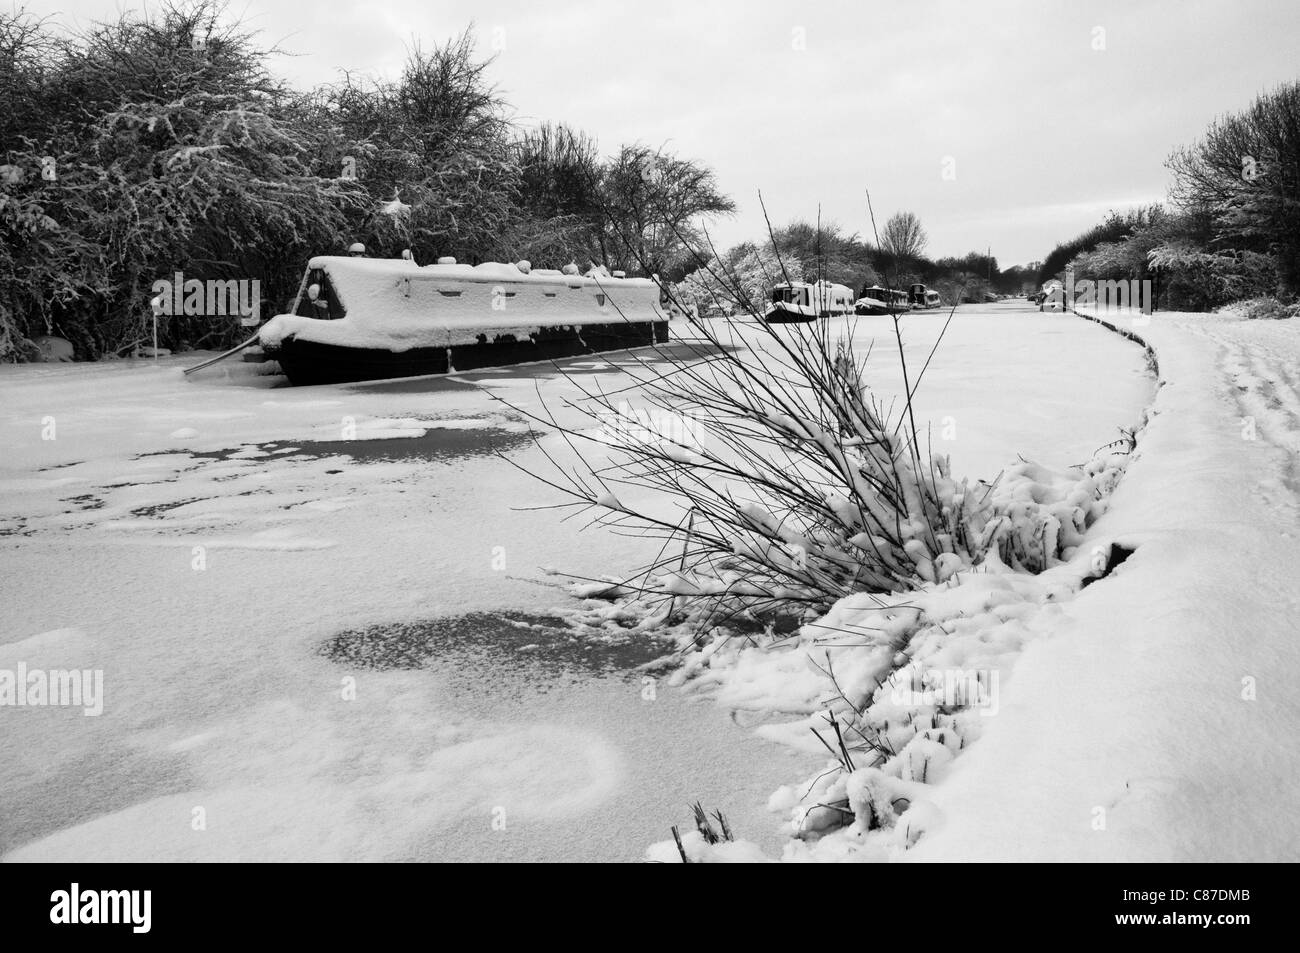 Frozen Grand Union canal and boats under snow in winter in Cosgrove, Northamptonshire, near Milton Keynes - Stock Image